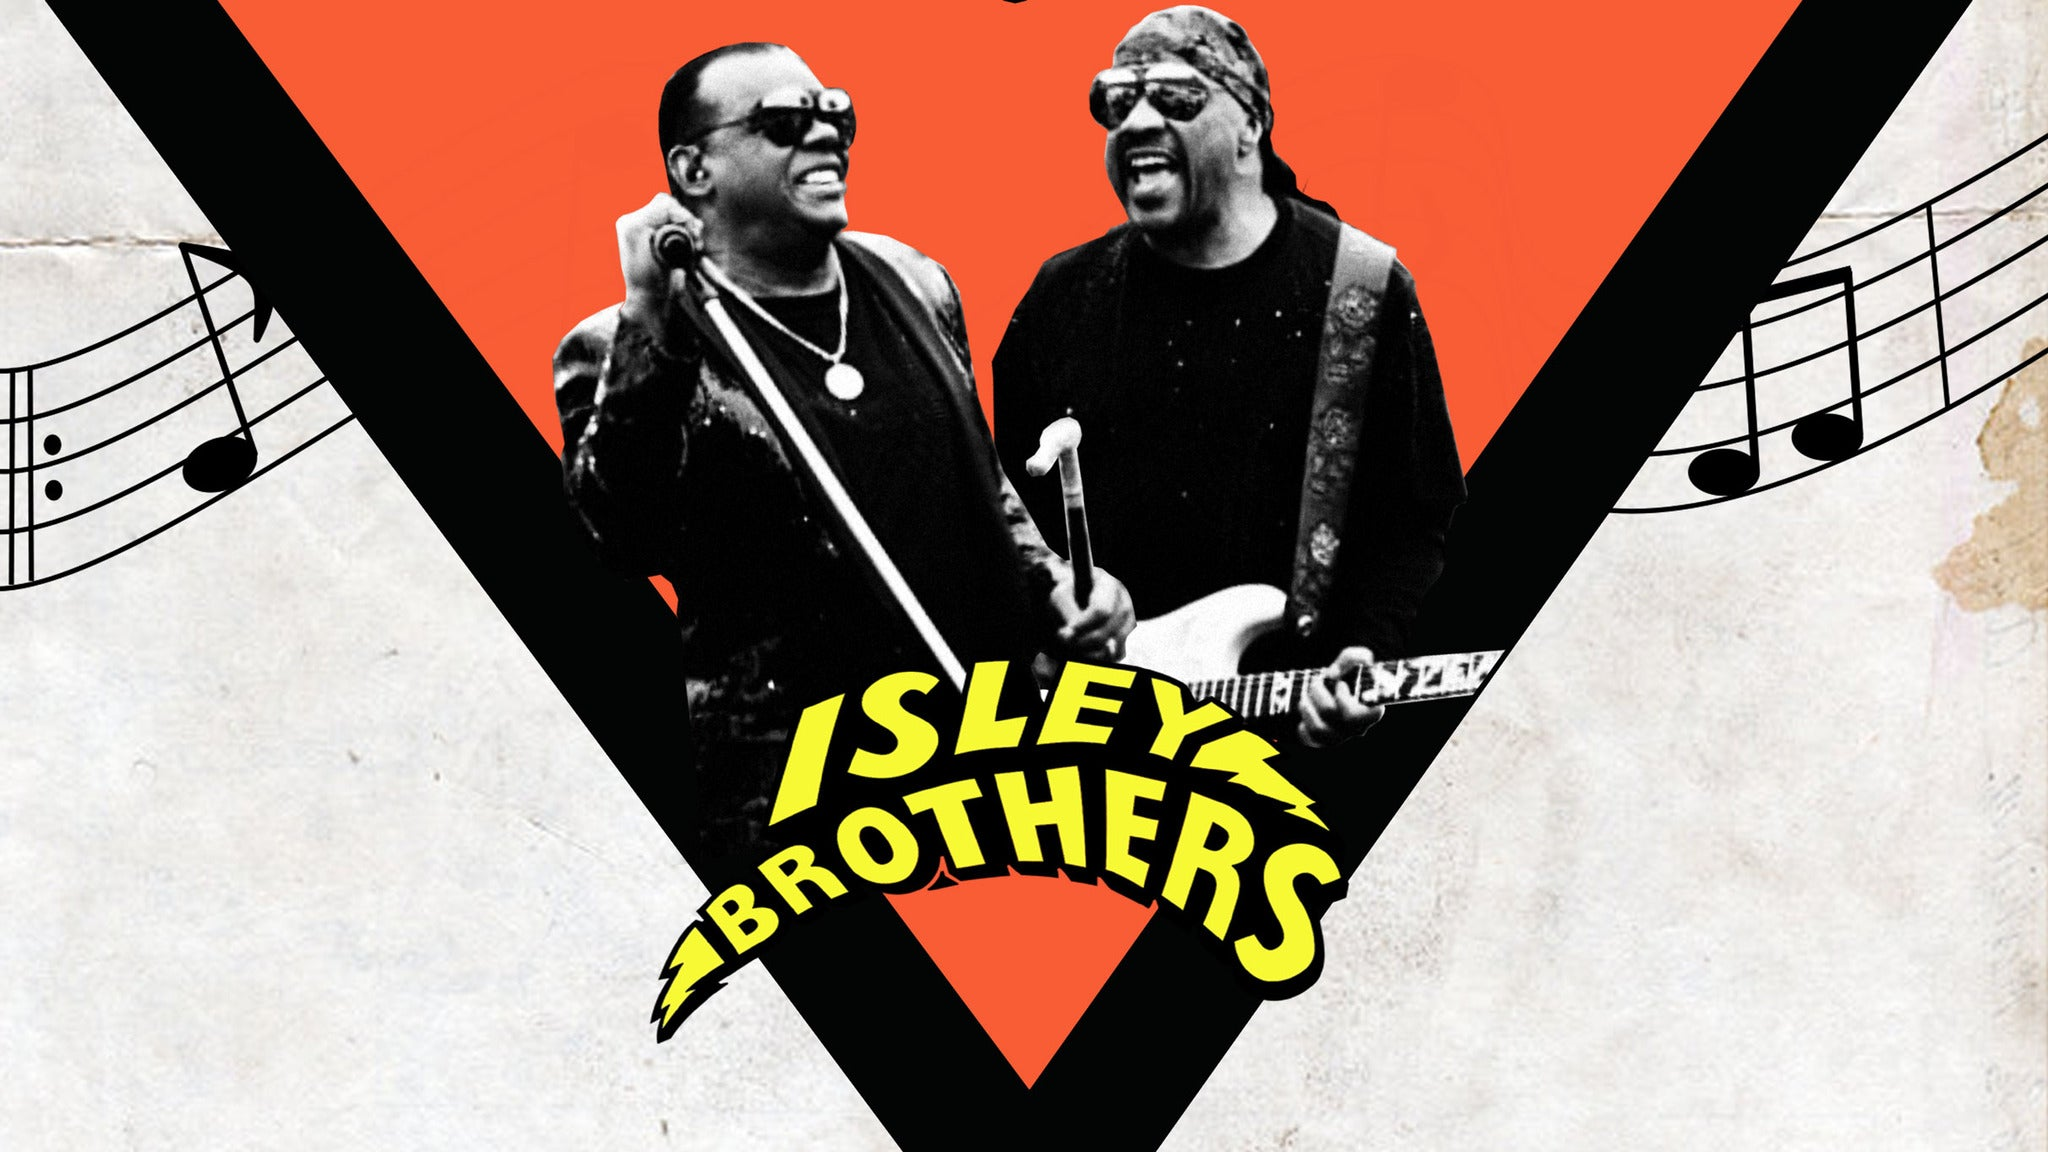 The Isley Brothers pre-sale password